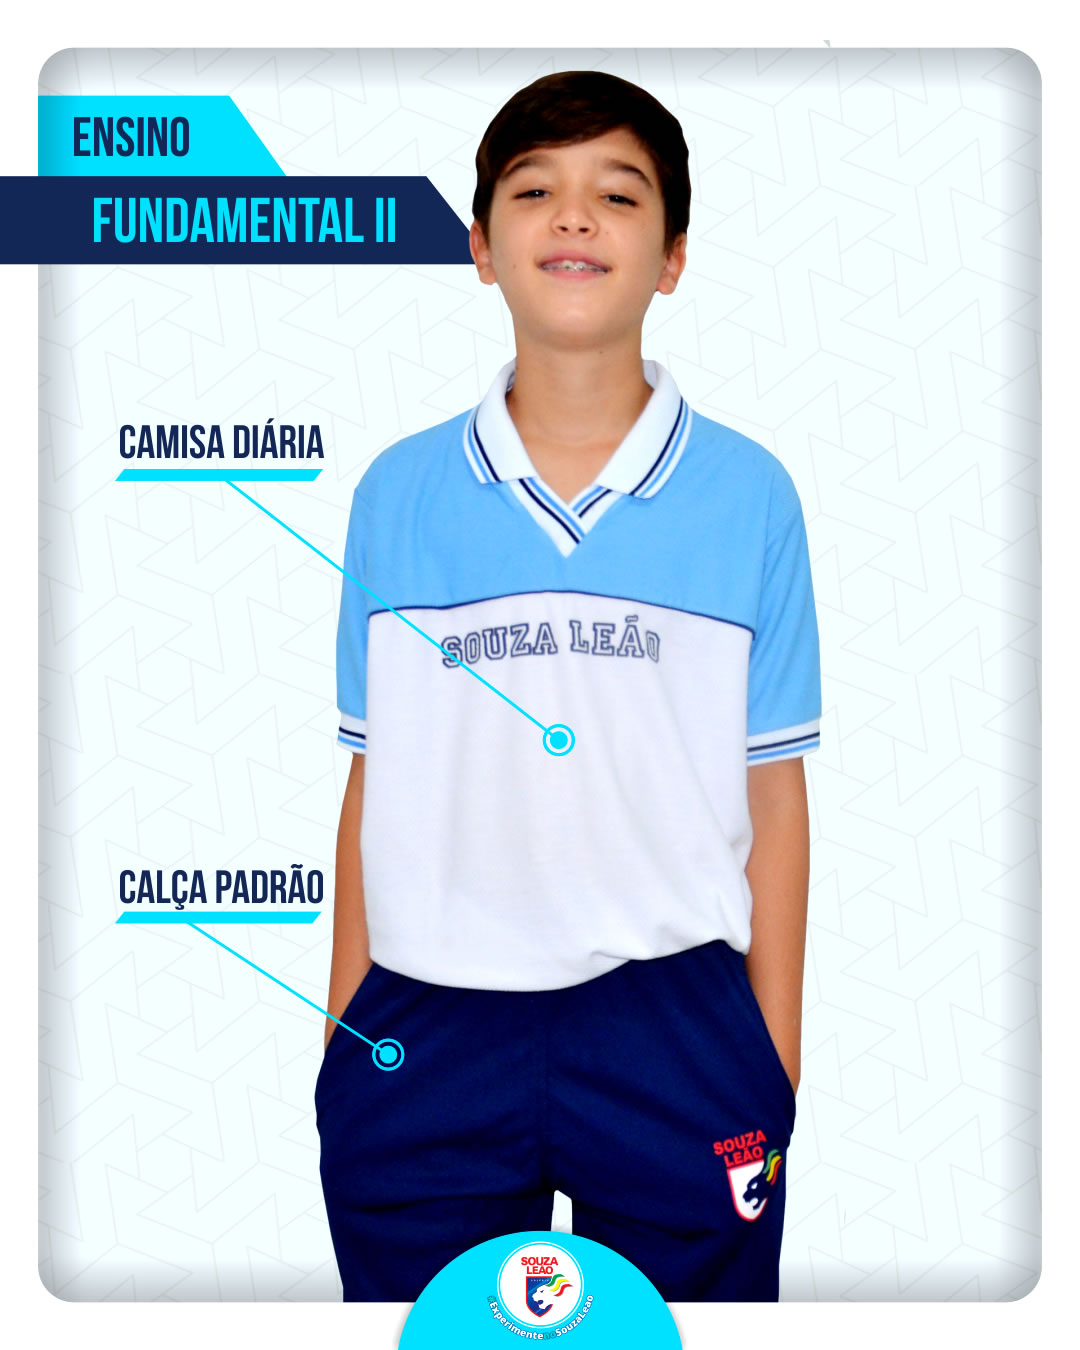 Camisa Diaria Calca Padrao Fundamental 2